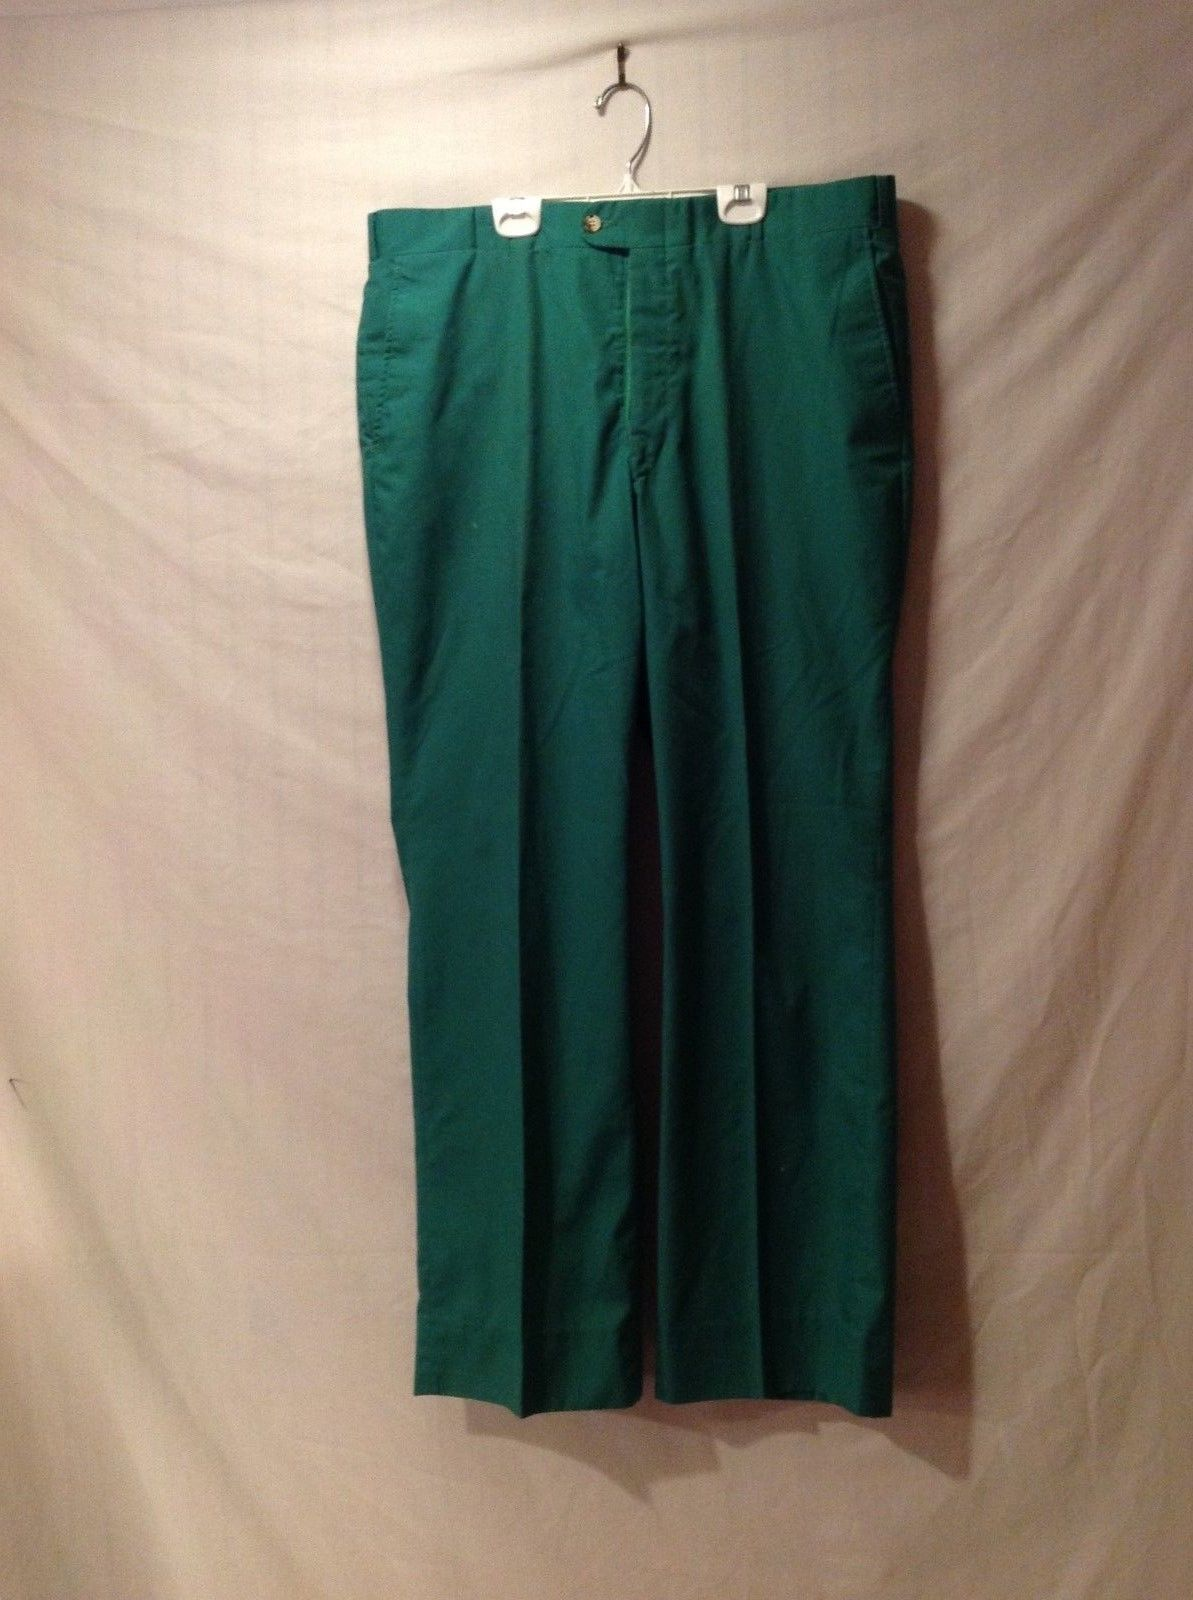 Mens' GEOFFREY BEENE Green Dress Slacks in Excellent Condition